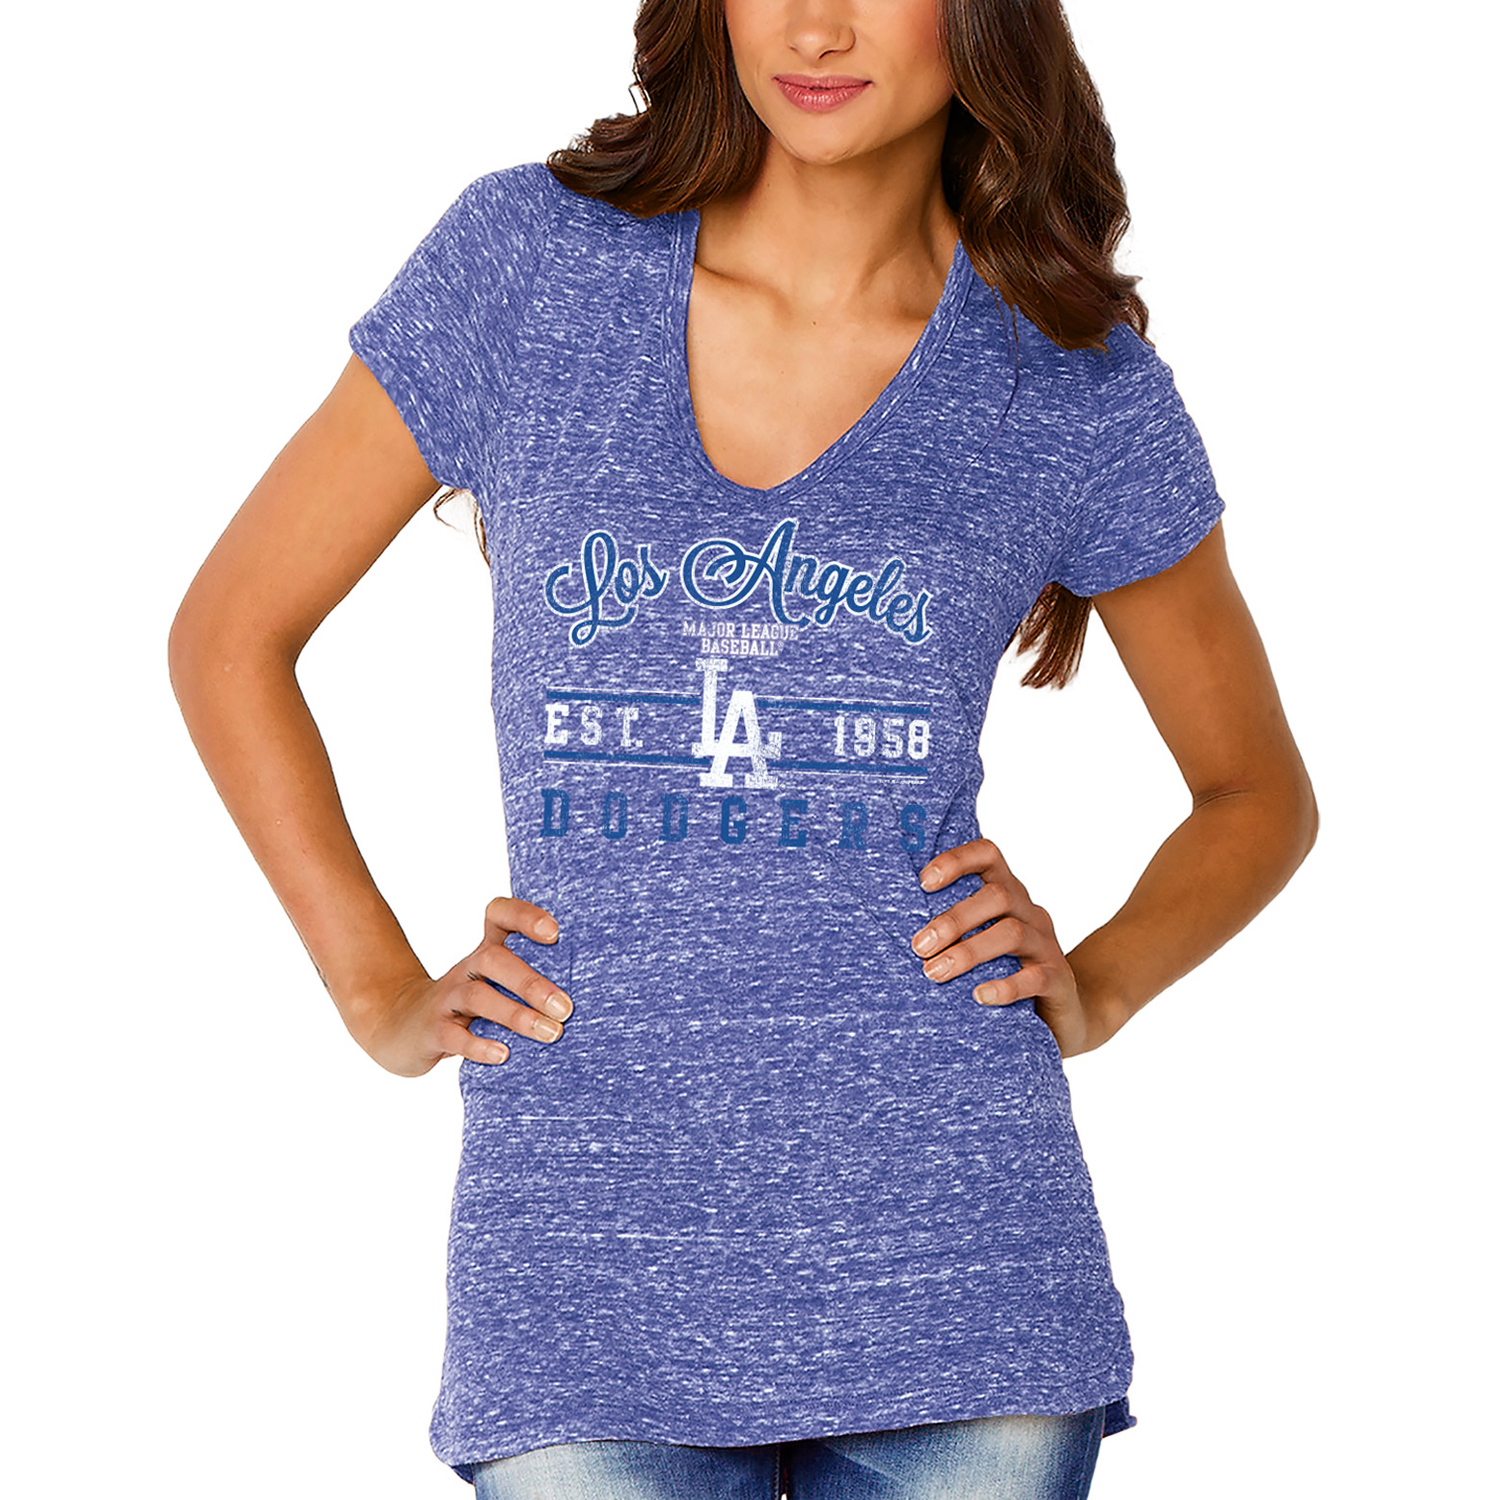 Los Angeles Dodgers Soft as a Grape Women's Double Play V-Neck T-Shirt - Royal